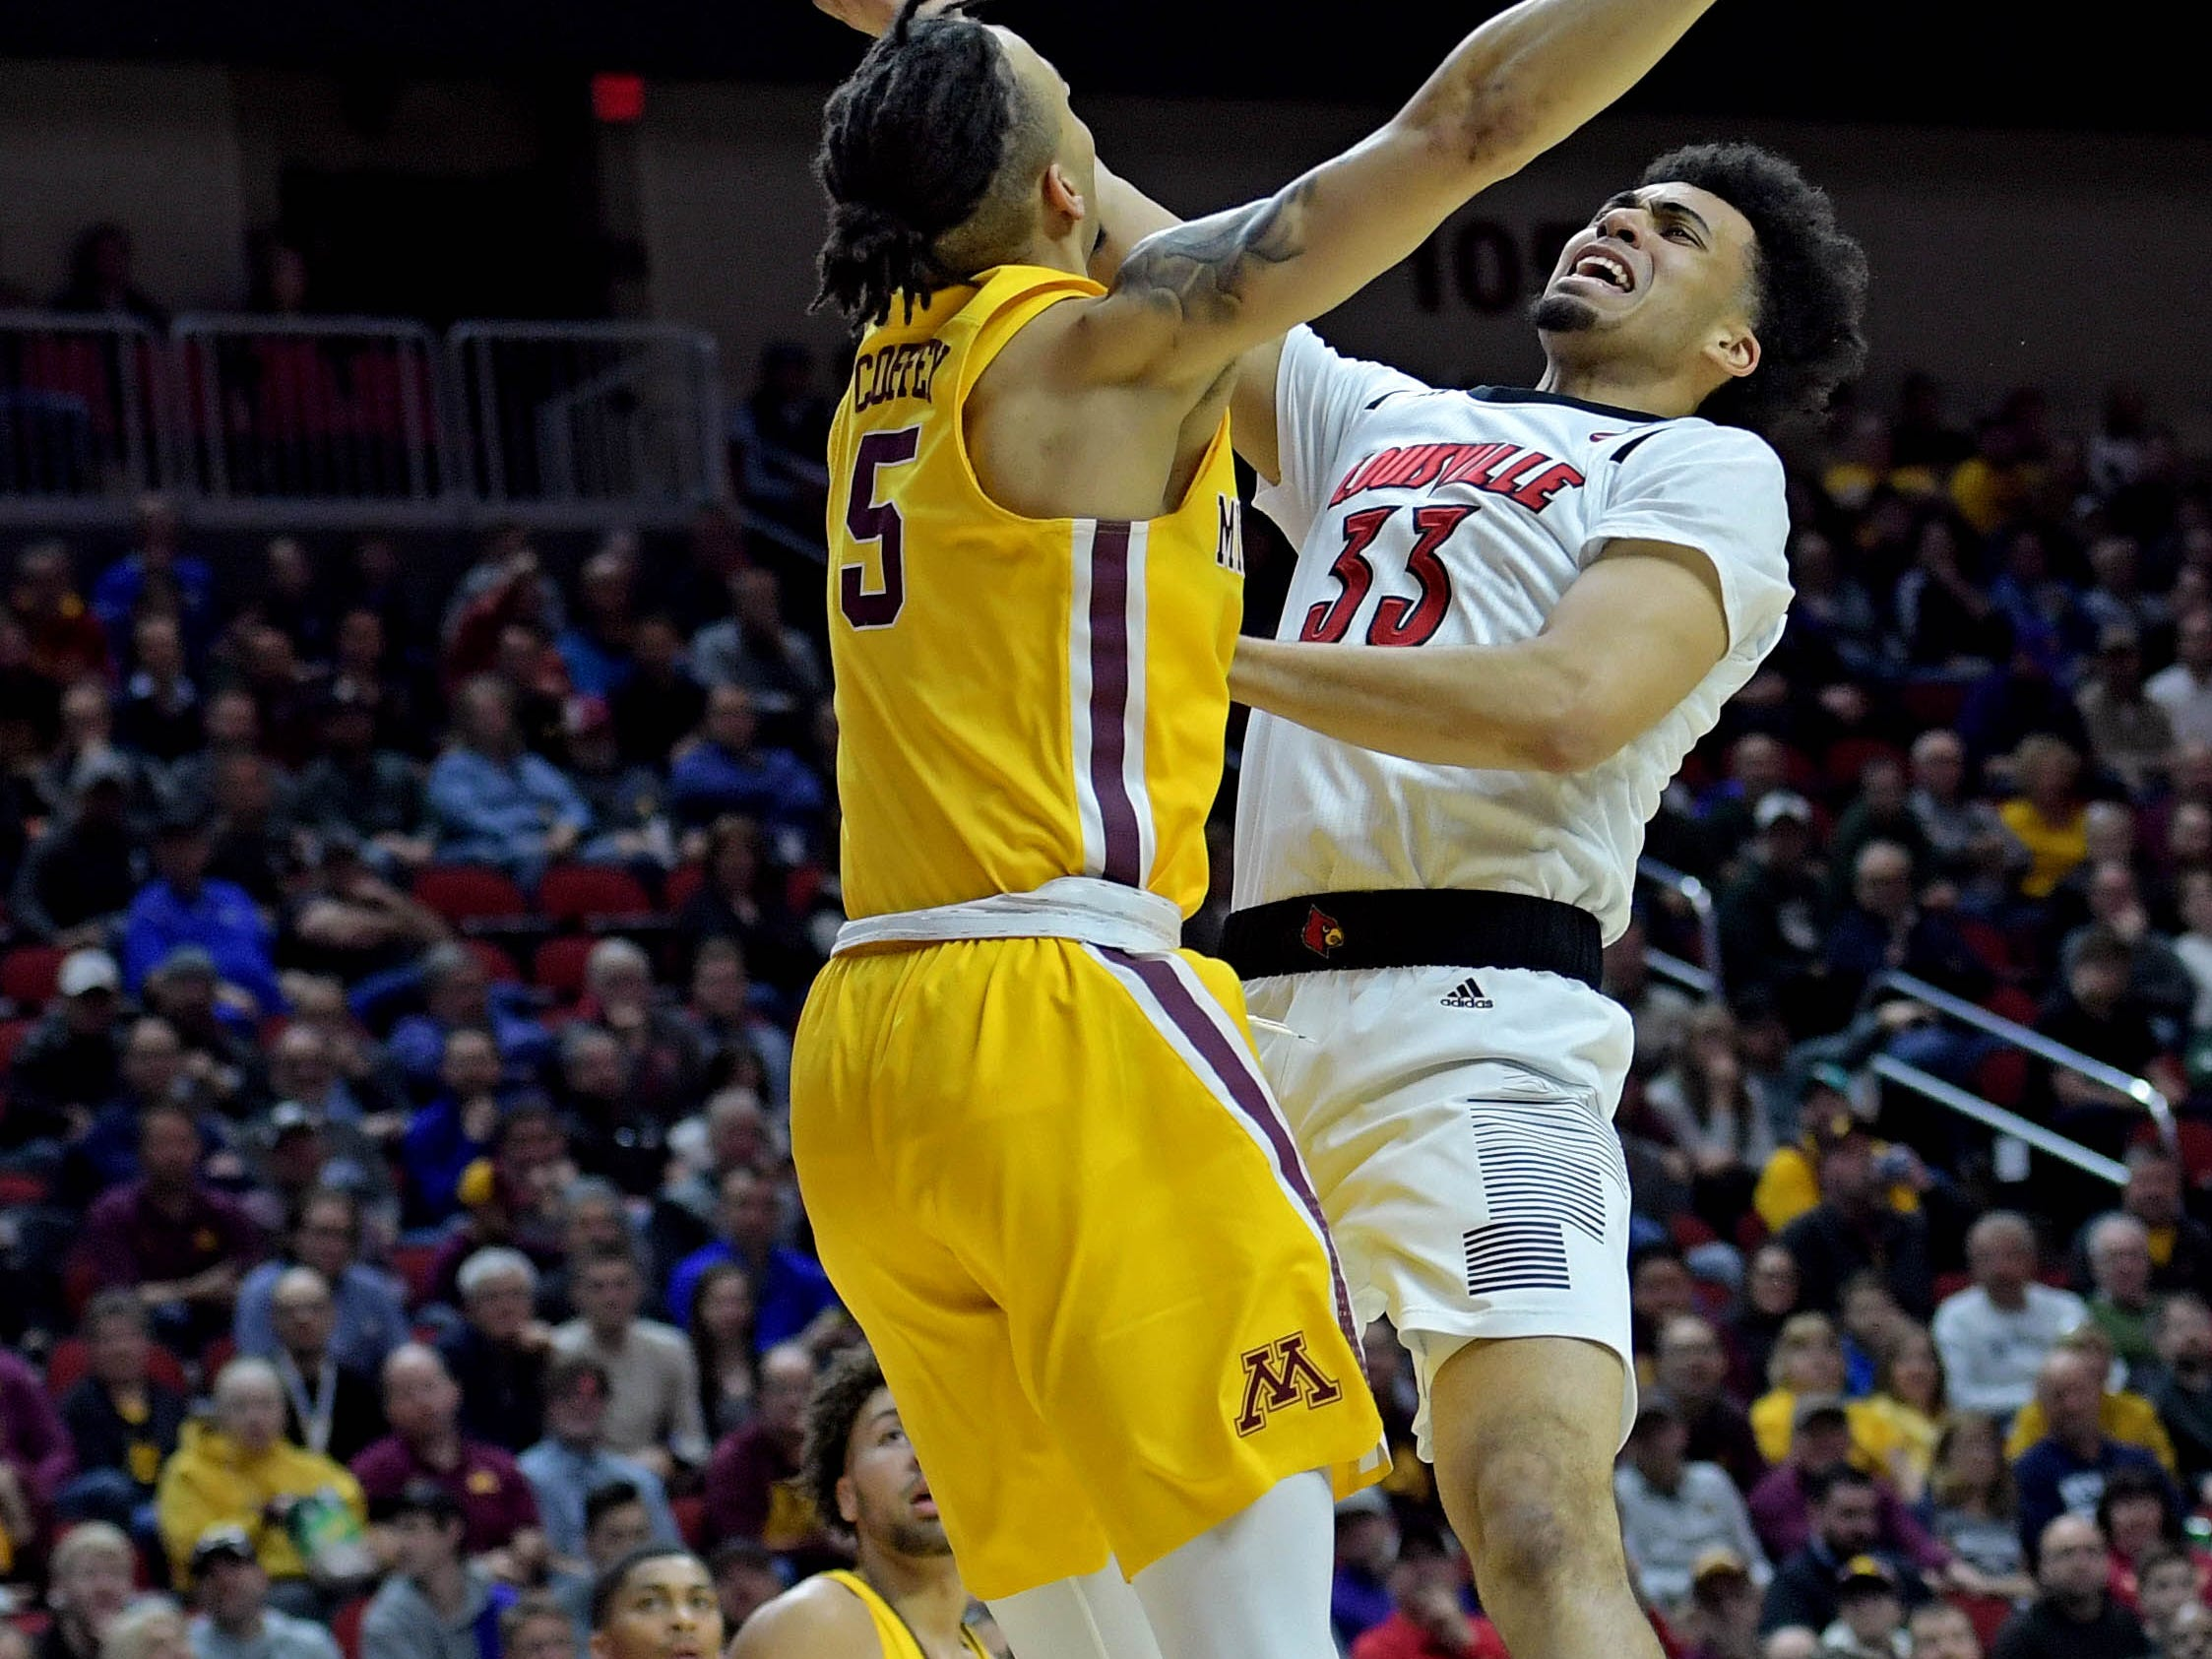 Mar 21, 2019; Des Moines, IA, United States; Louisville Cardinals forward Jordan Nwora (33) shoots the ball against Minnesota Golden Gophers guard Amir Coffey (5) during the first half in the first round of the 2019 NCAA Tournament at Wells Fargo Arena. Mandatory Credit: Steven Branscombe-USA TODAY Sports